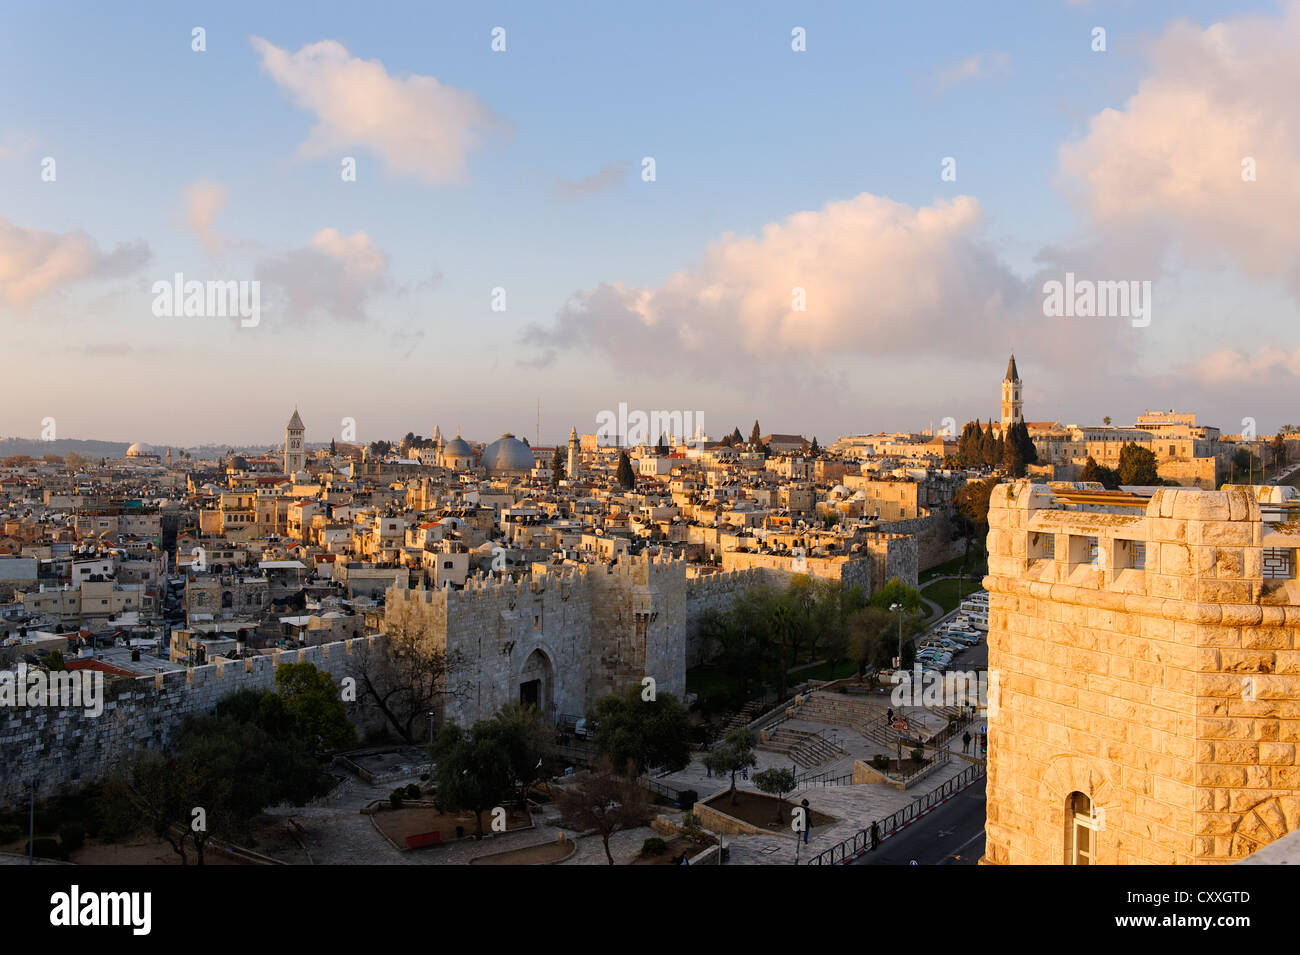 Damaskus Gate in the morning light, from the Paulus Haus guest house, old town, Jerusalem, Israel, Middle East - Stock Image